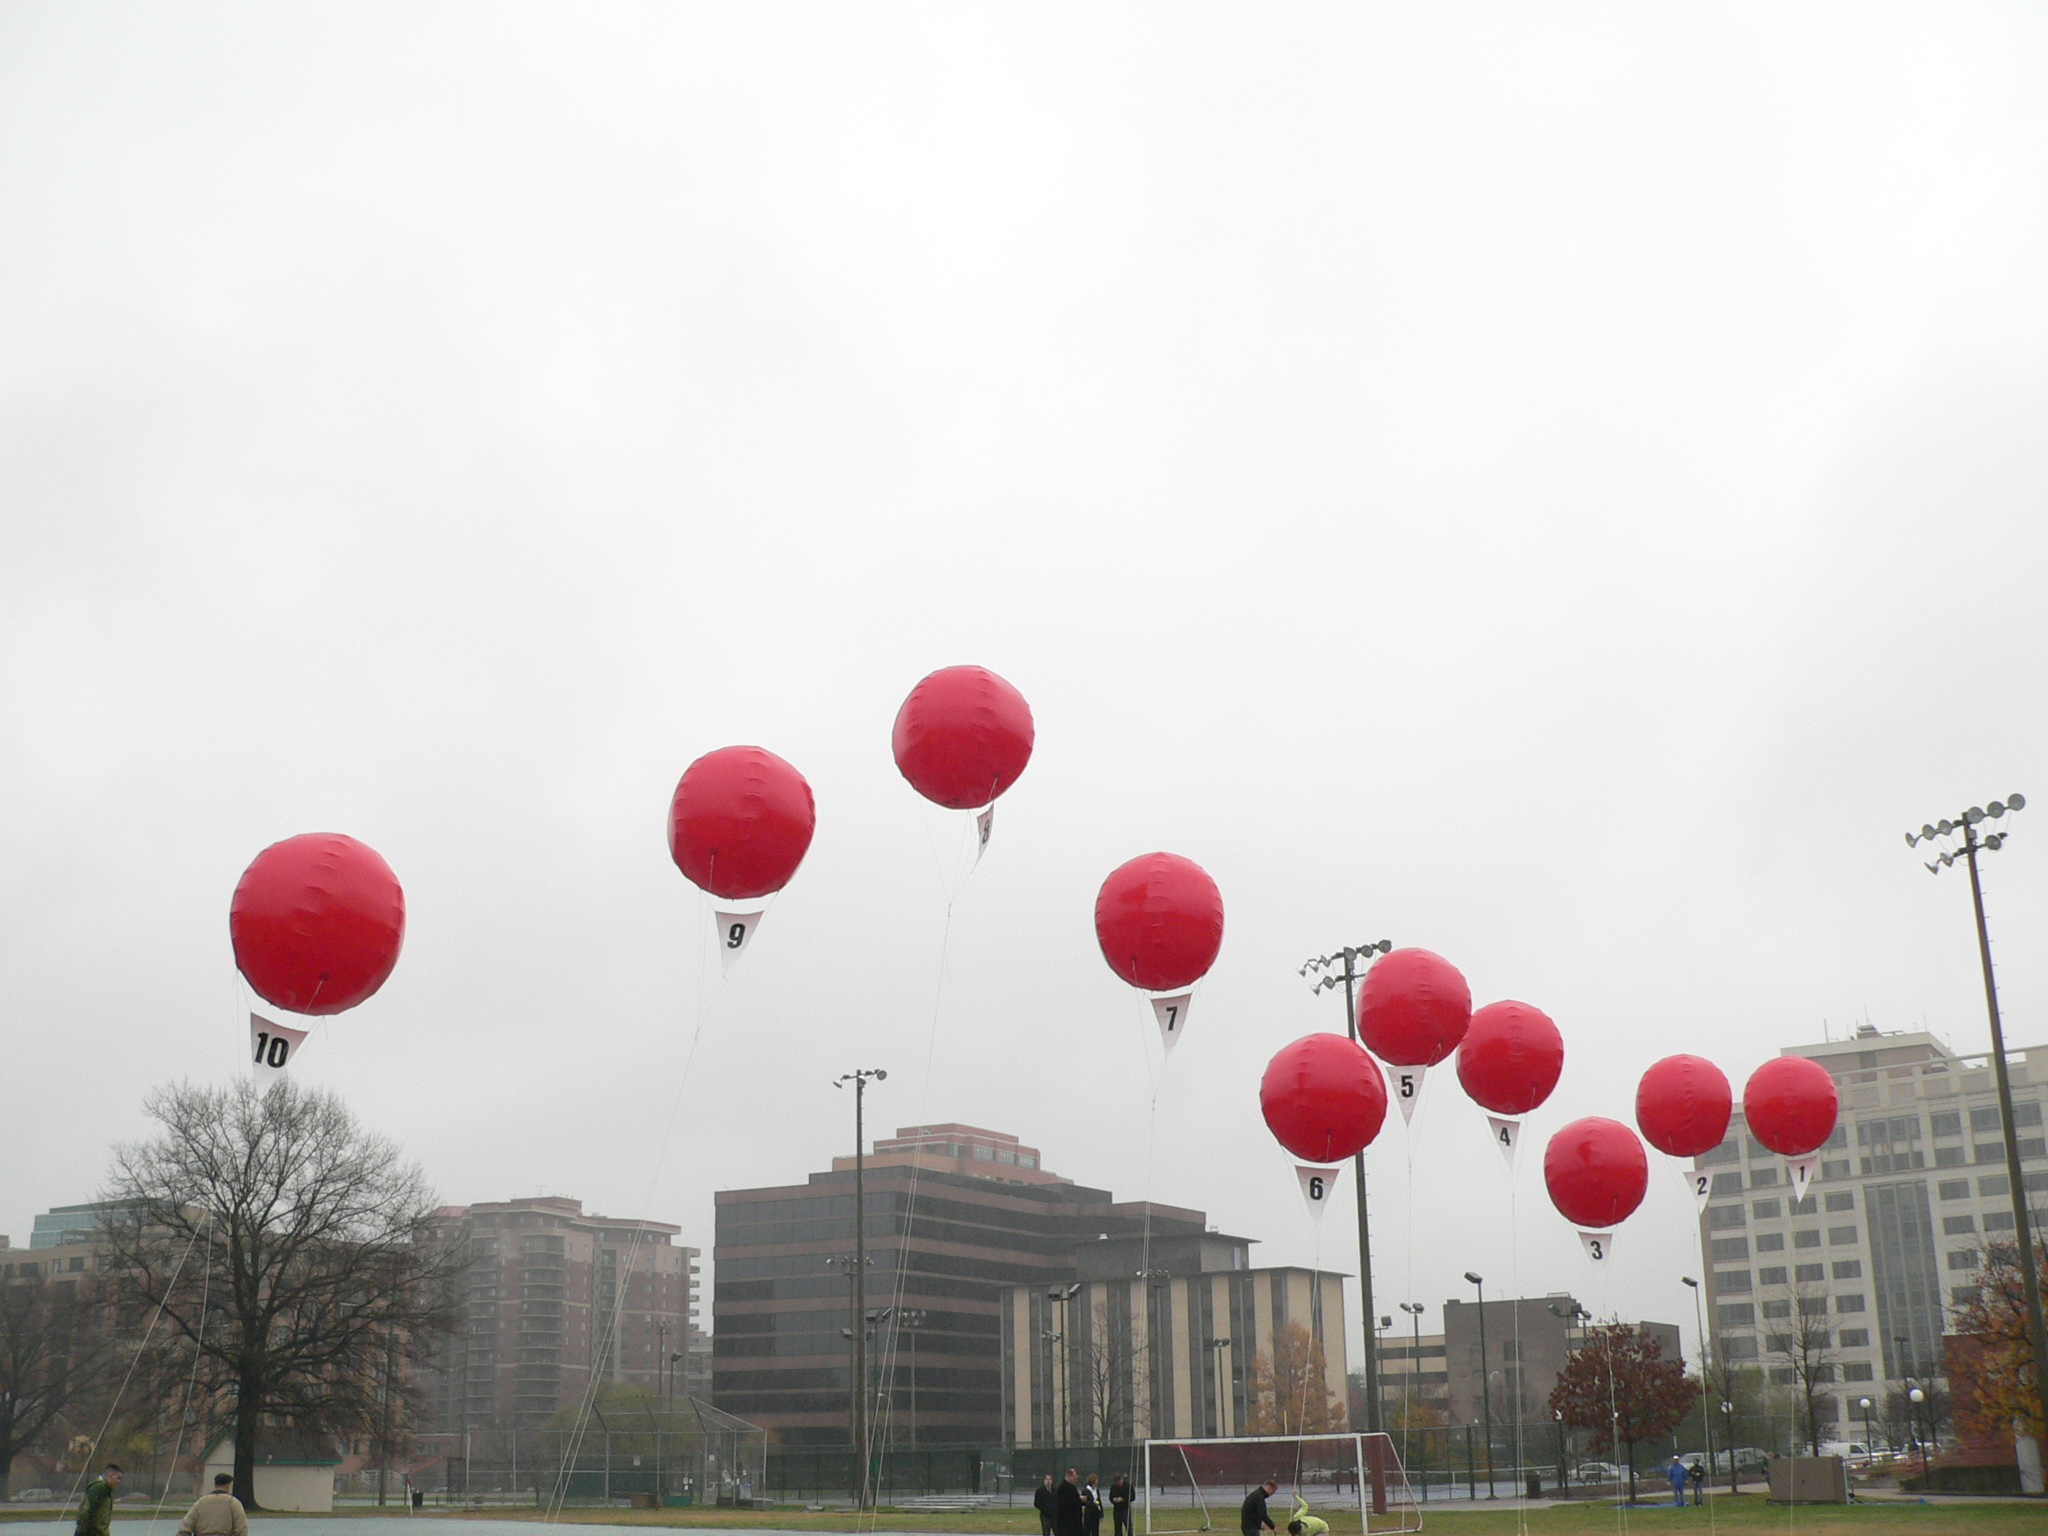 DARPA's Big Red Balloons